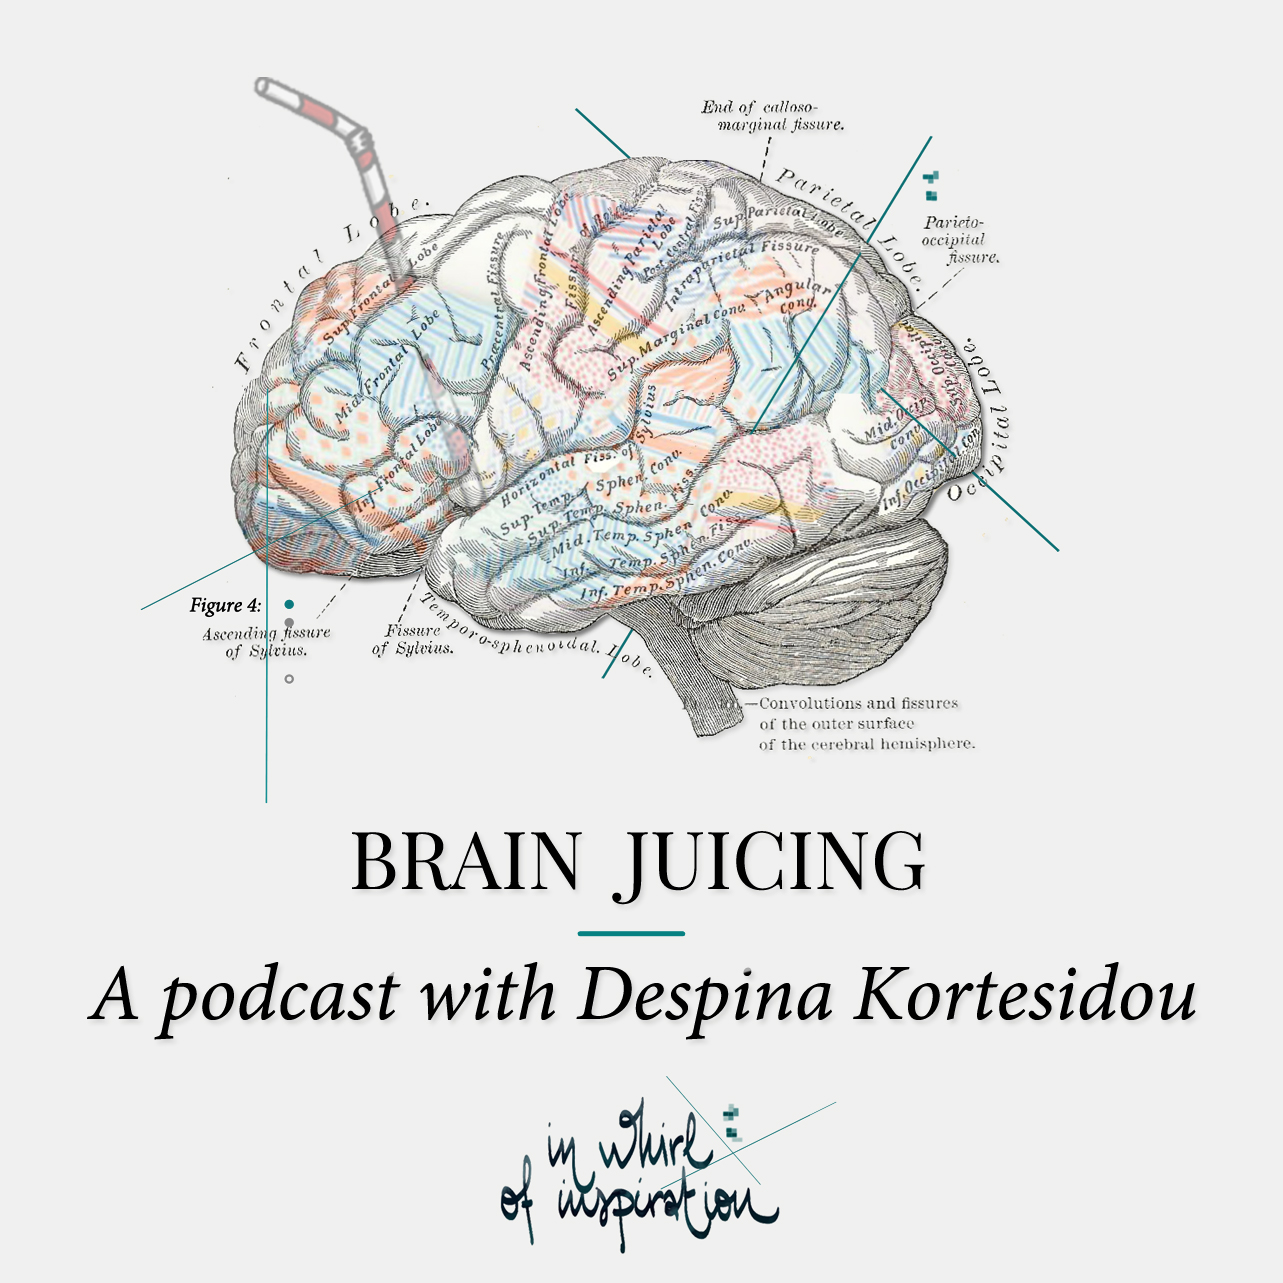 Brain Juicing the new podcast by In Whirl of Inspiration